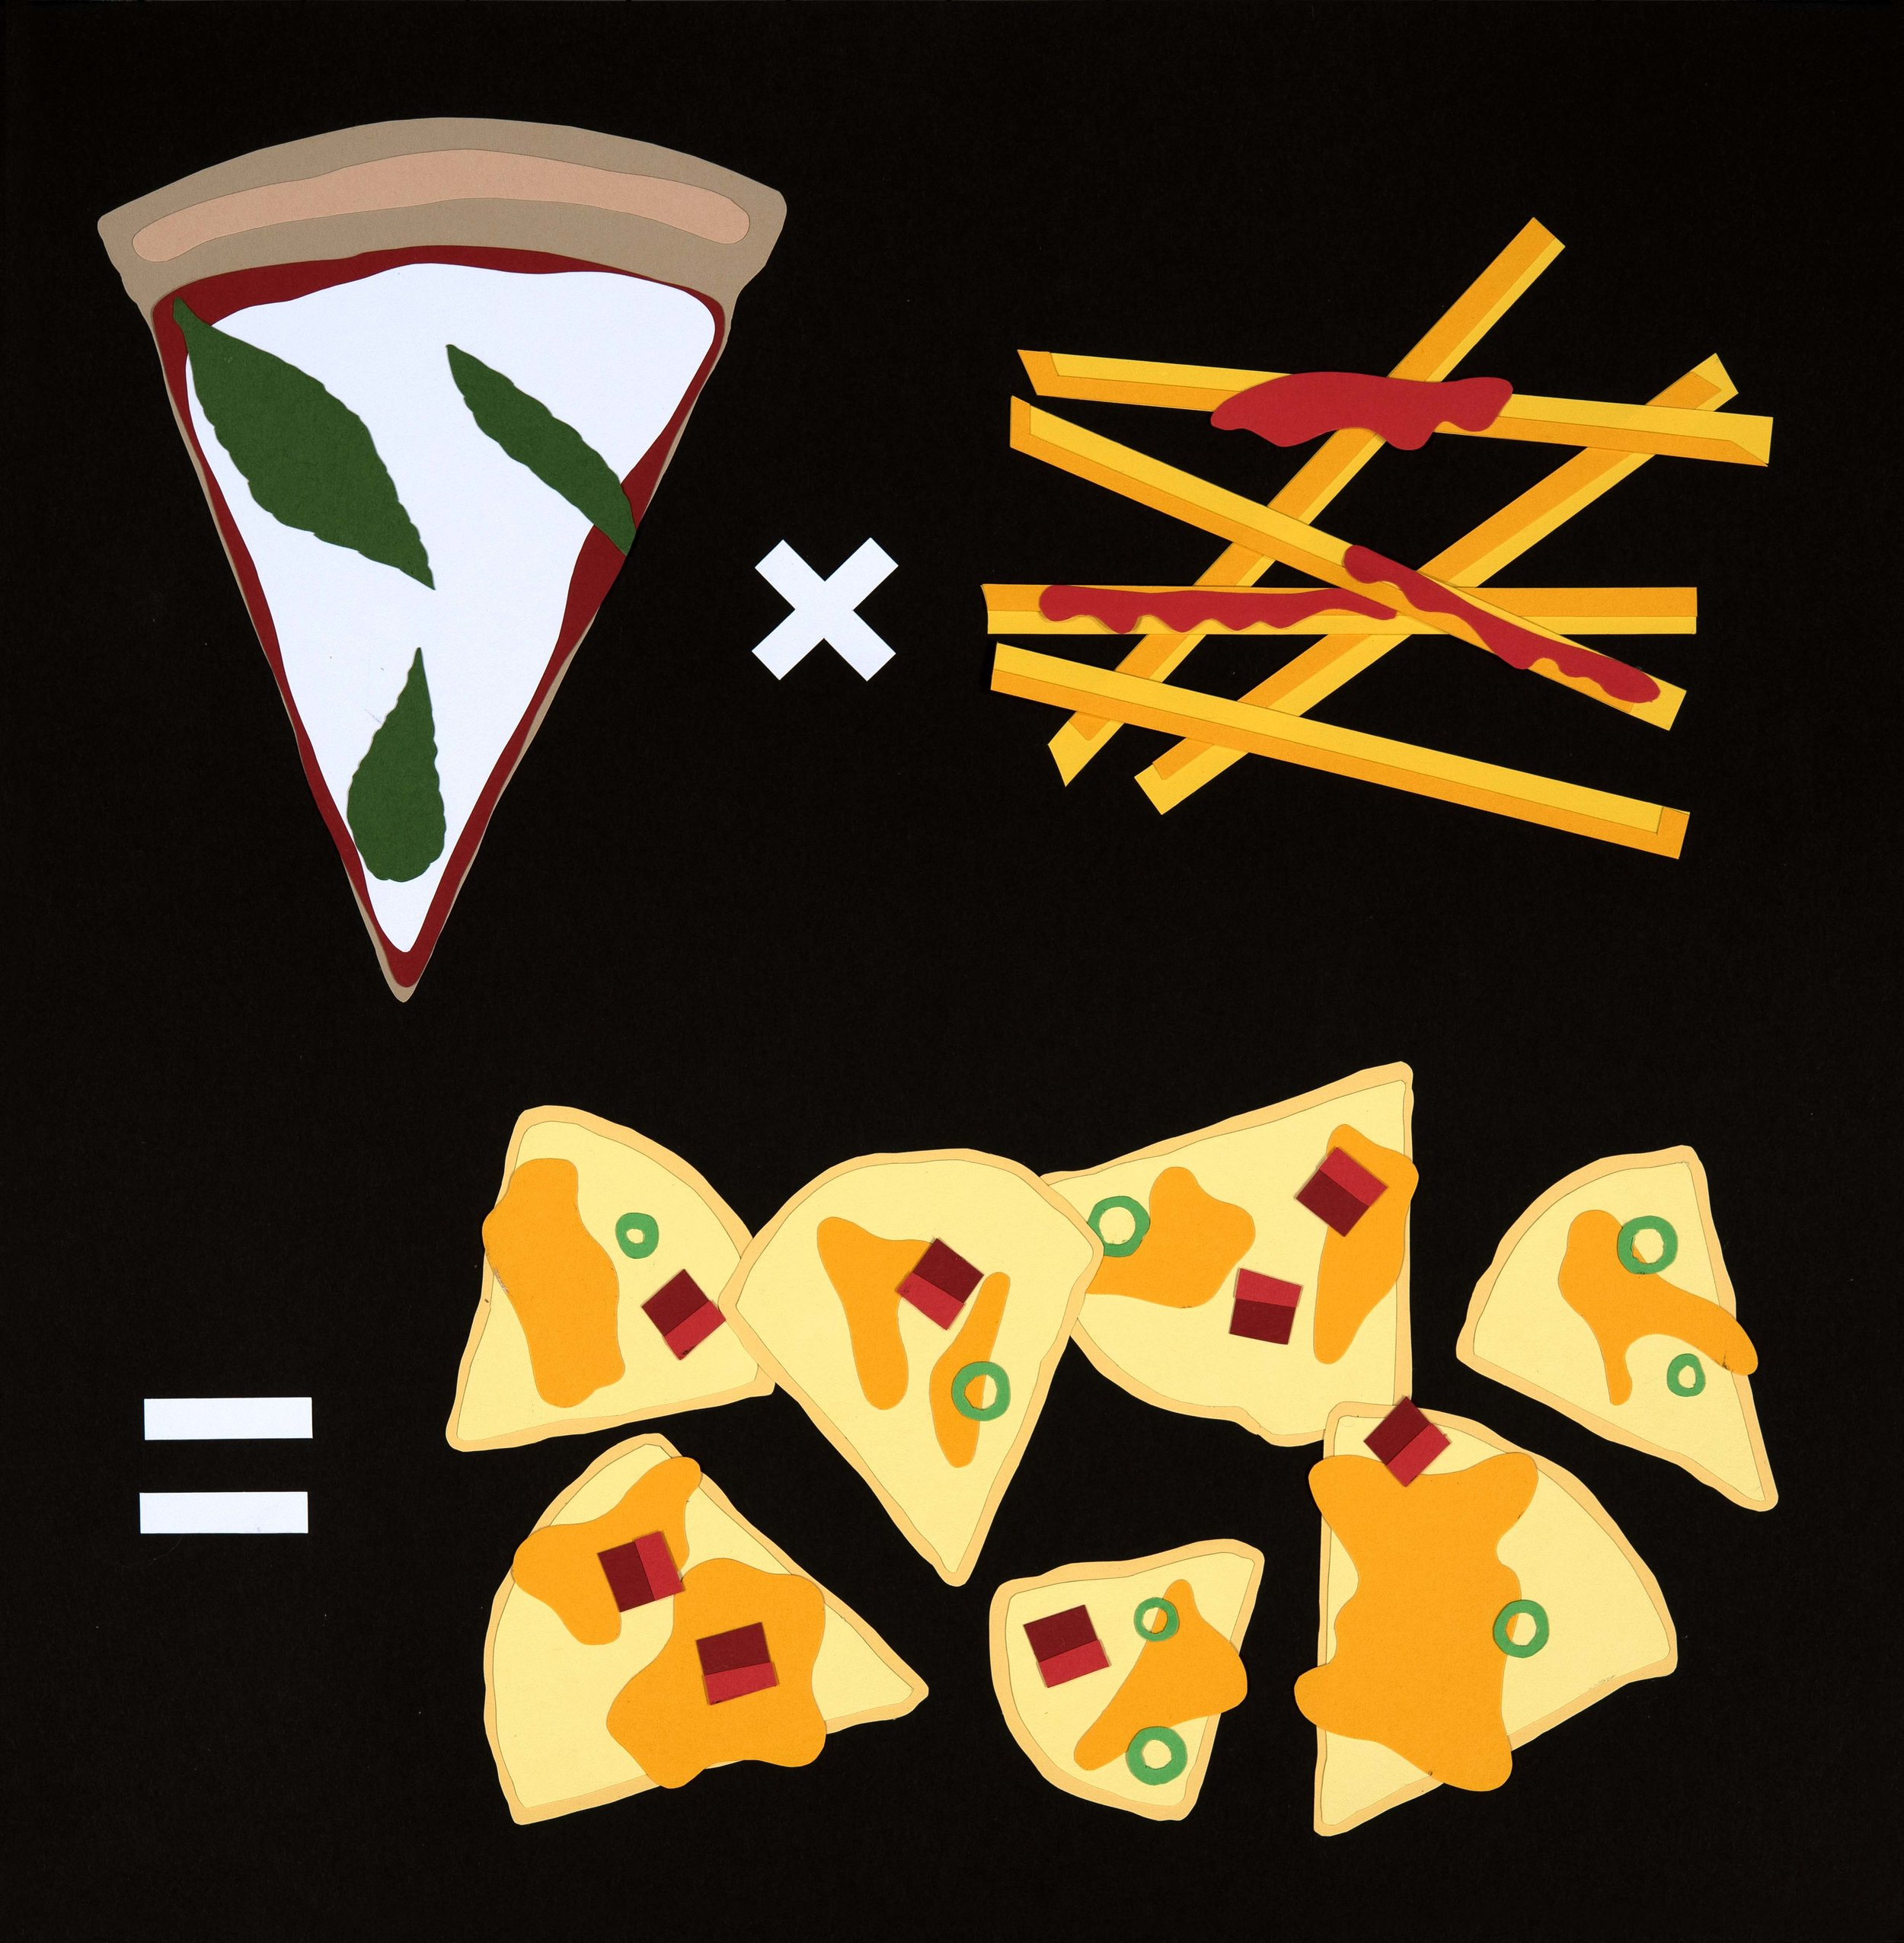 Pizza x French Fries = Nachos